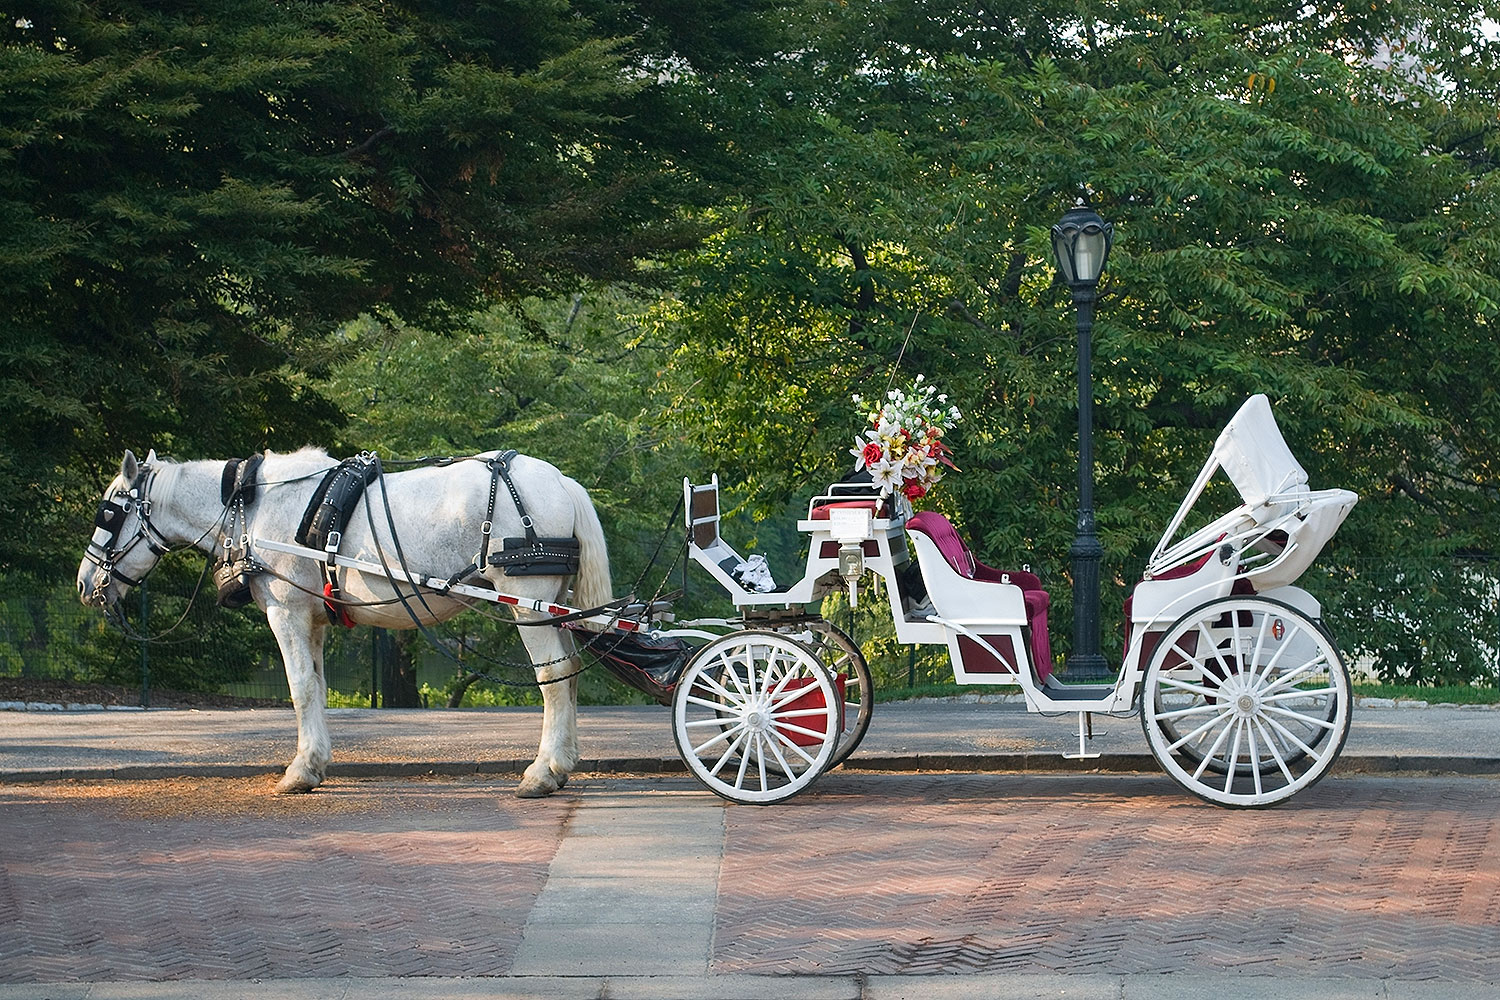 A horse and buggy in Central Park